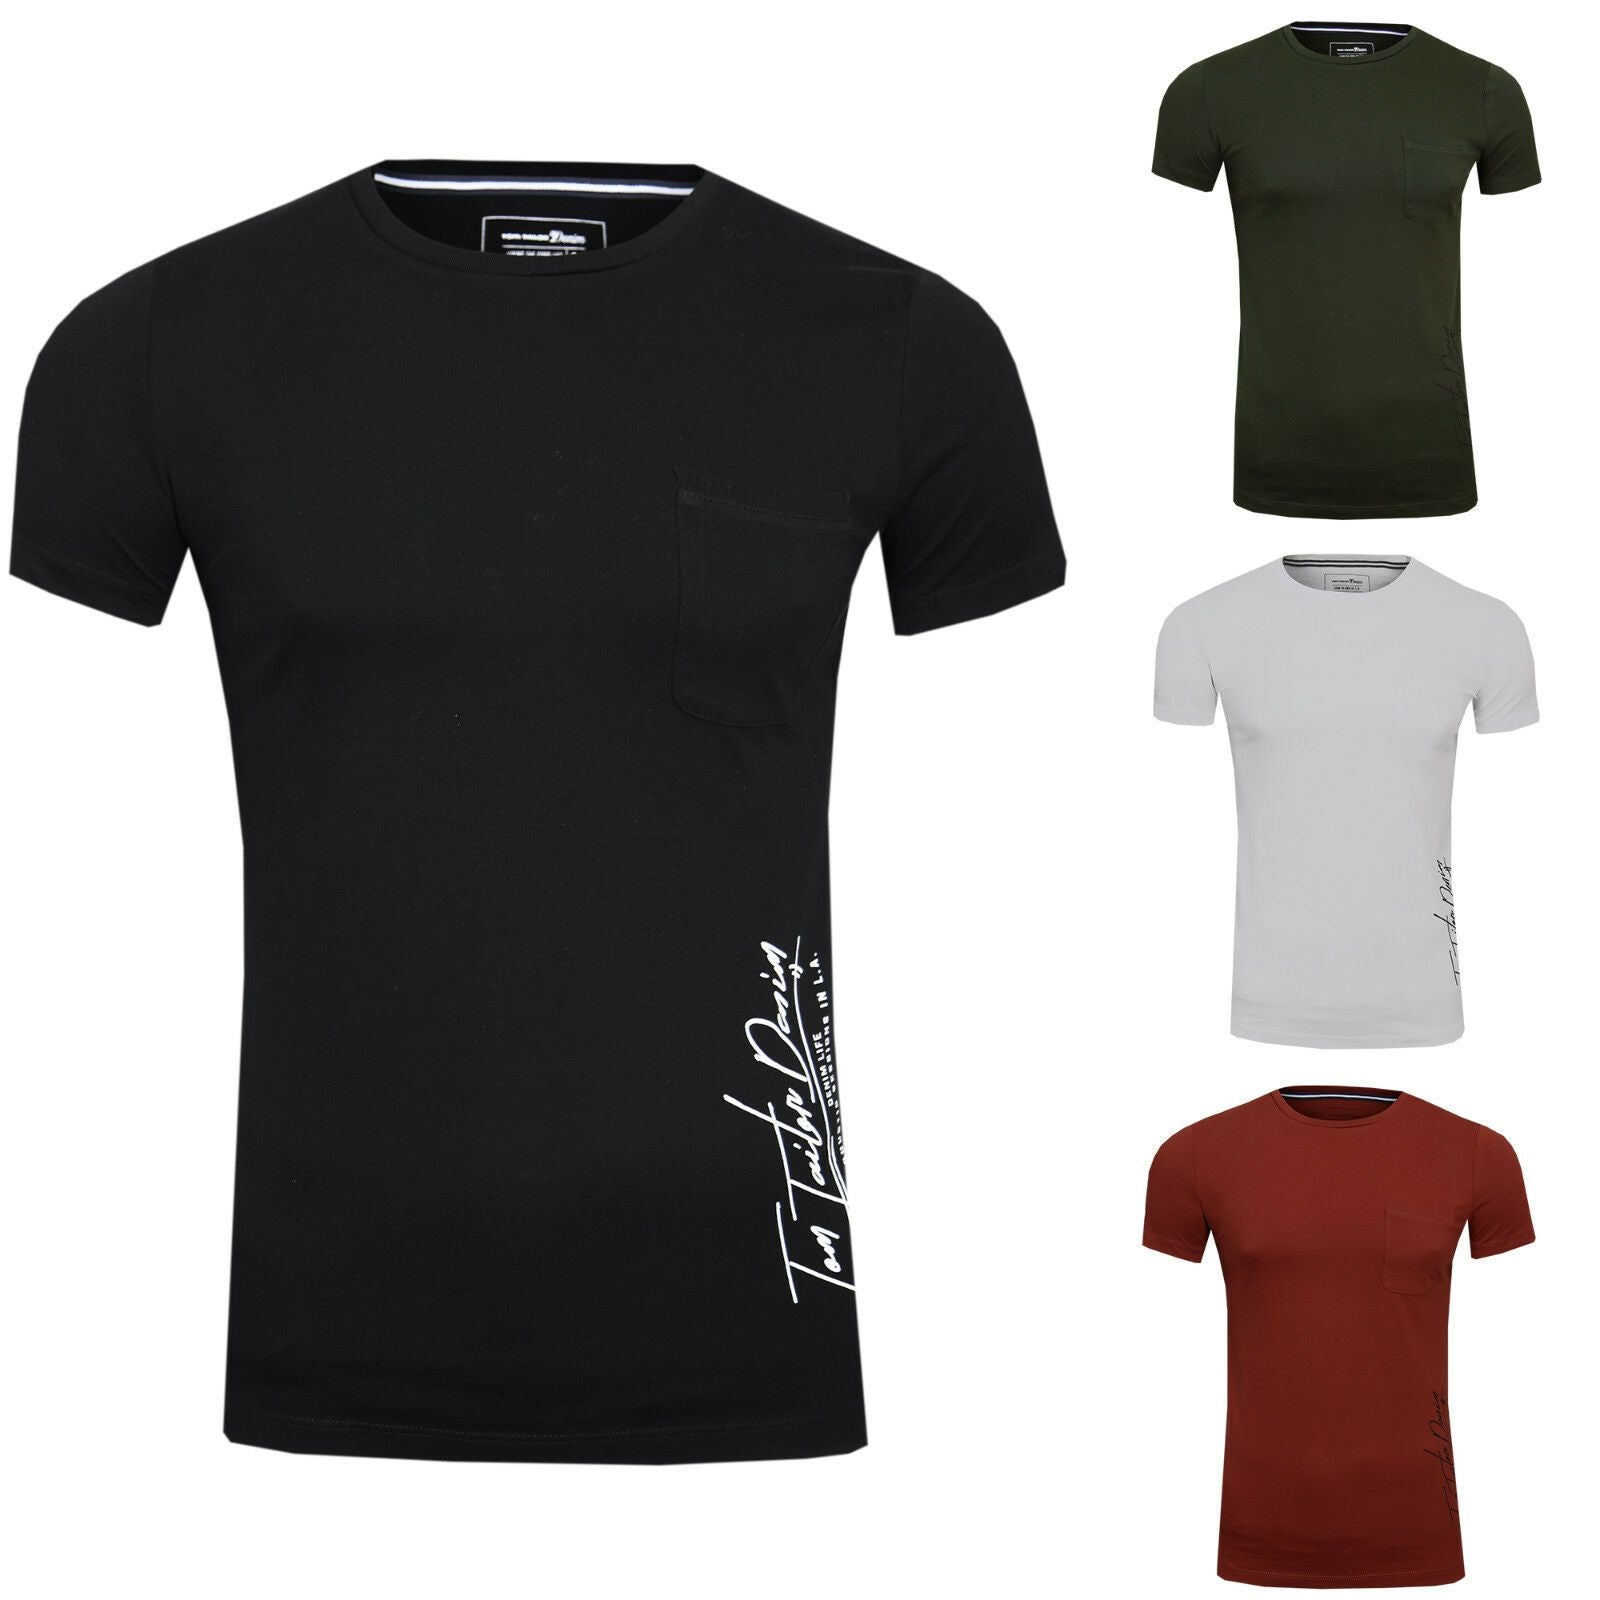 TOM TAILOR Denim T-Shirts/Tops T-Shirt mit Seitlichem Print - Jack & Jones